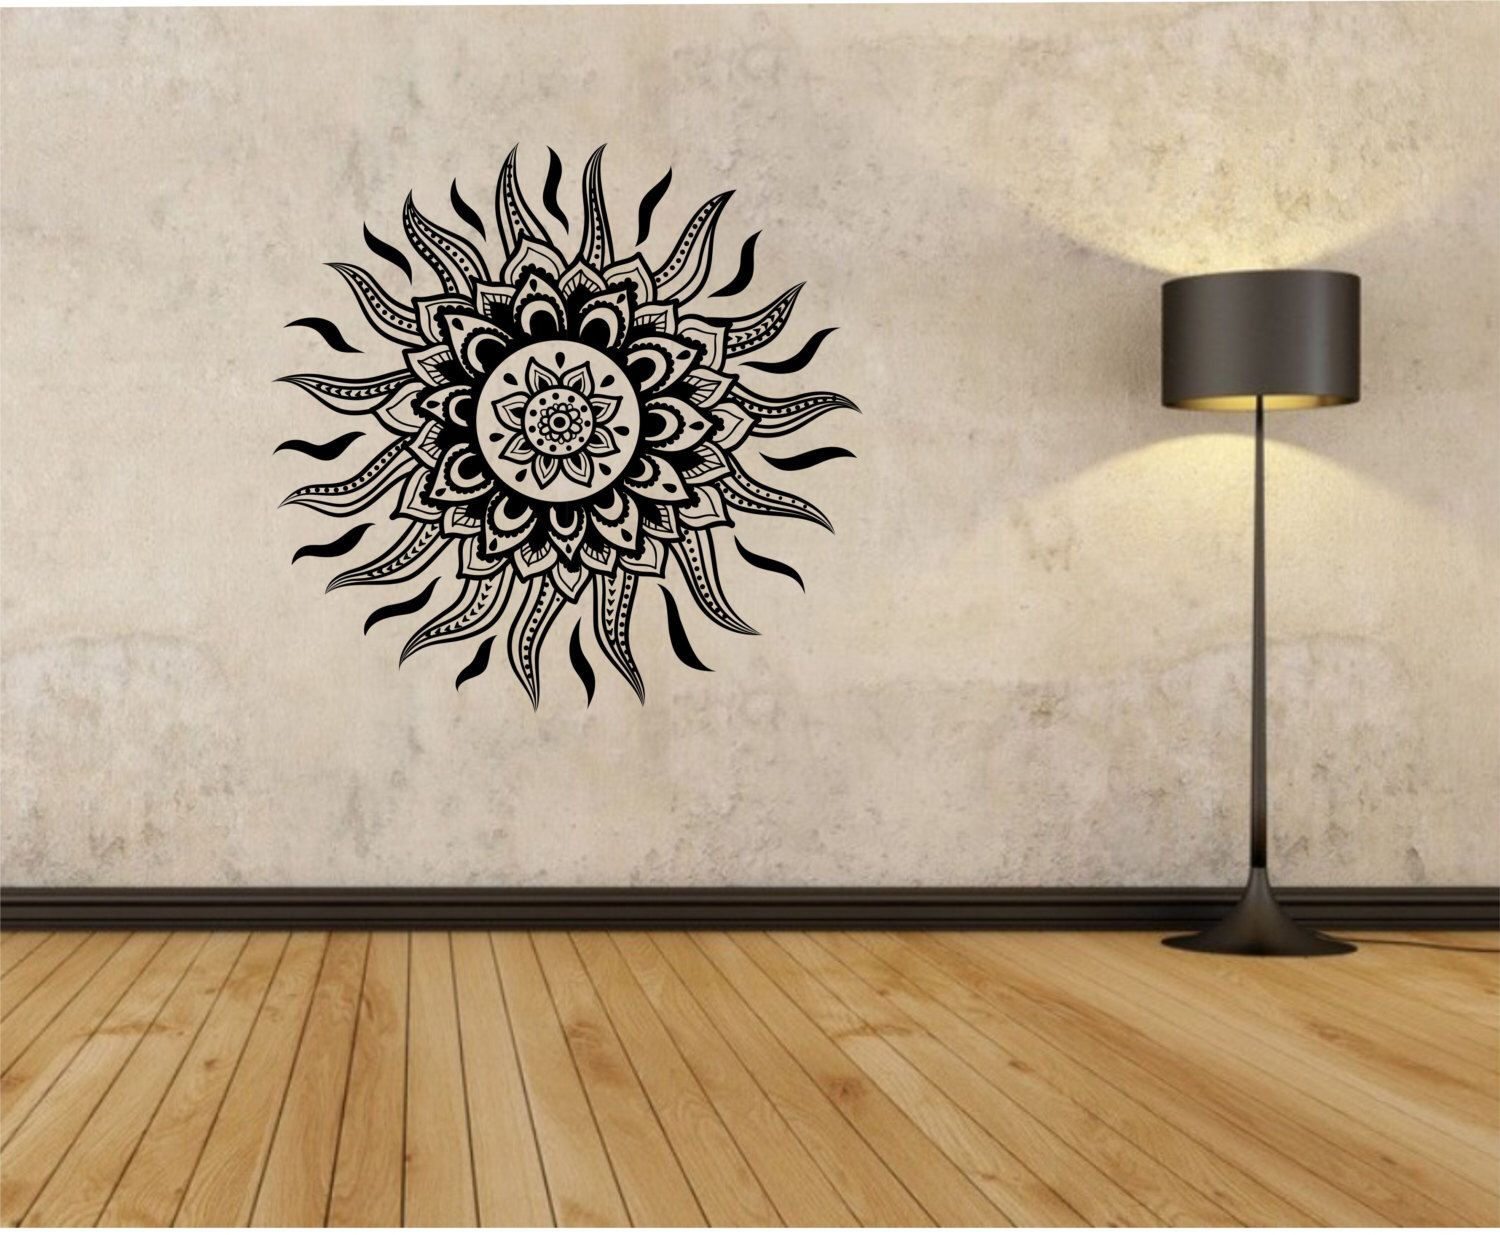 Sun tribal vinyl wall decal sticker art decor bedroom design mural sun tribal vinyl wall decal sticker art decor bedroom design mural hawaii by stateofthewall on etsy amipublicfo Image collections